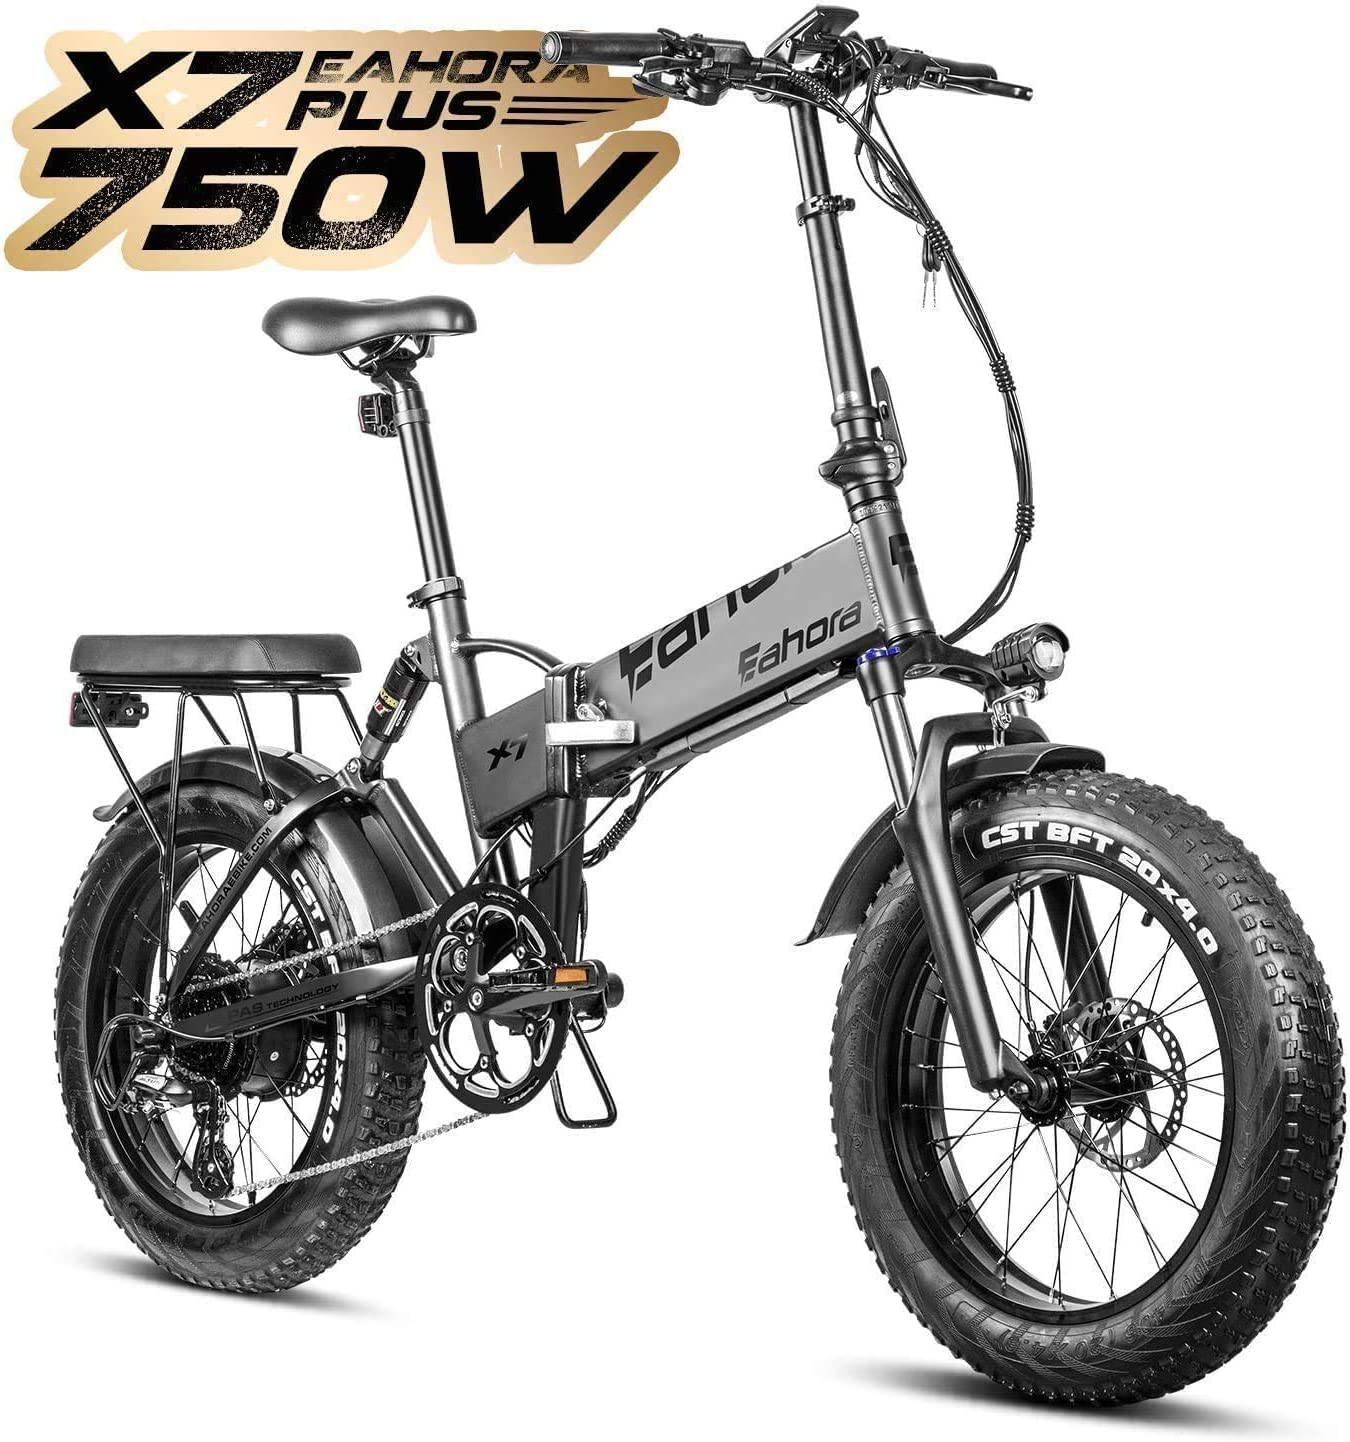 eAhora X7 Plus 48V 750W Folding Electric Bike Cruise Control 20 Inch Fat Tire Beach Snow All Terrain Electric Bicycle with Electric Lock 10.4Ah Battery Ebike for Adults Power Regeneration 8 Speed